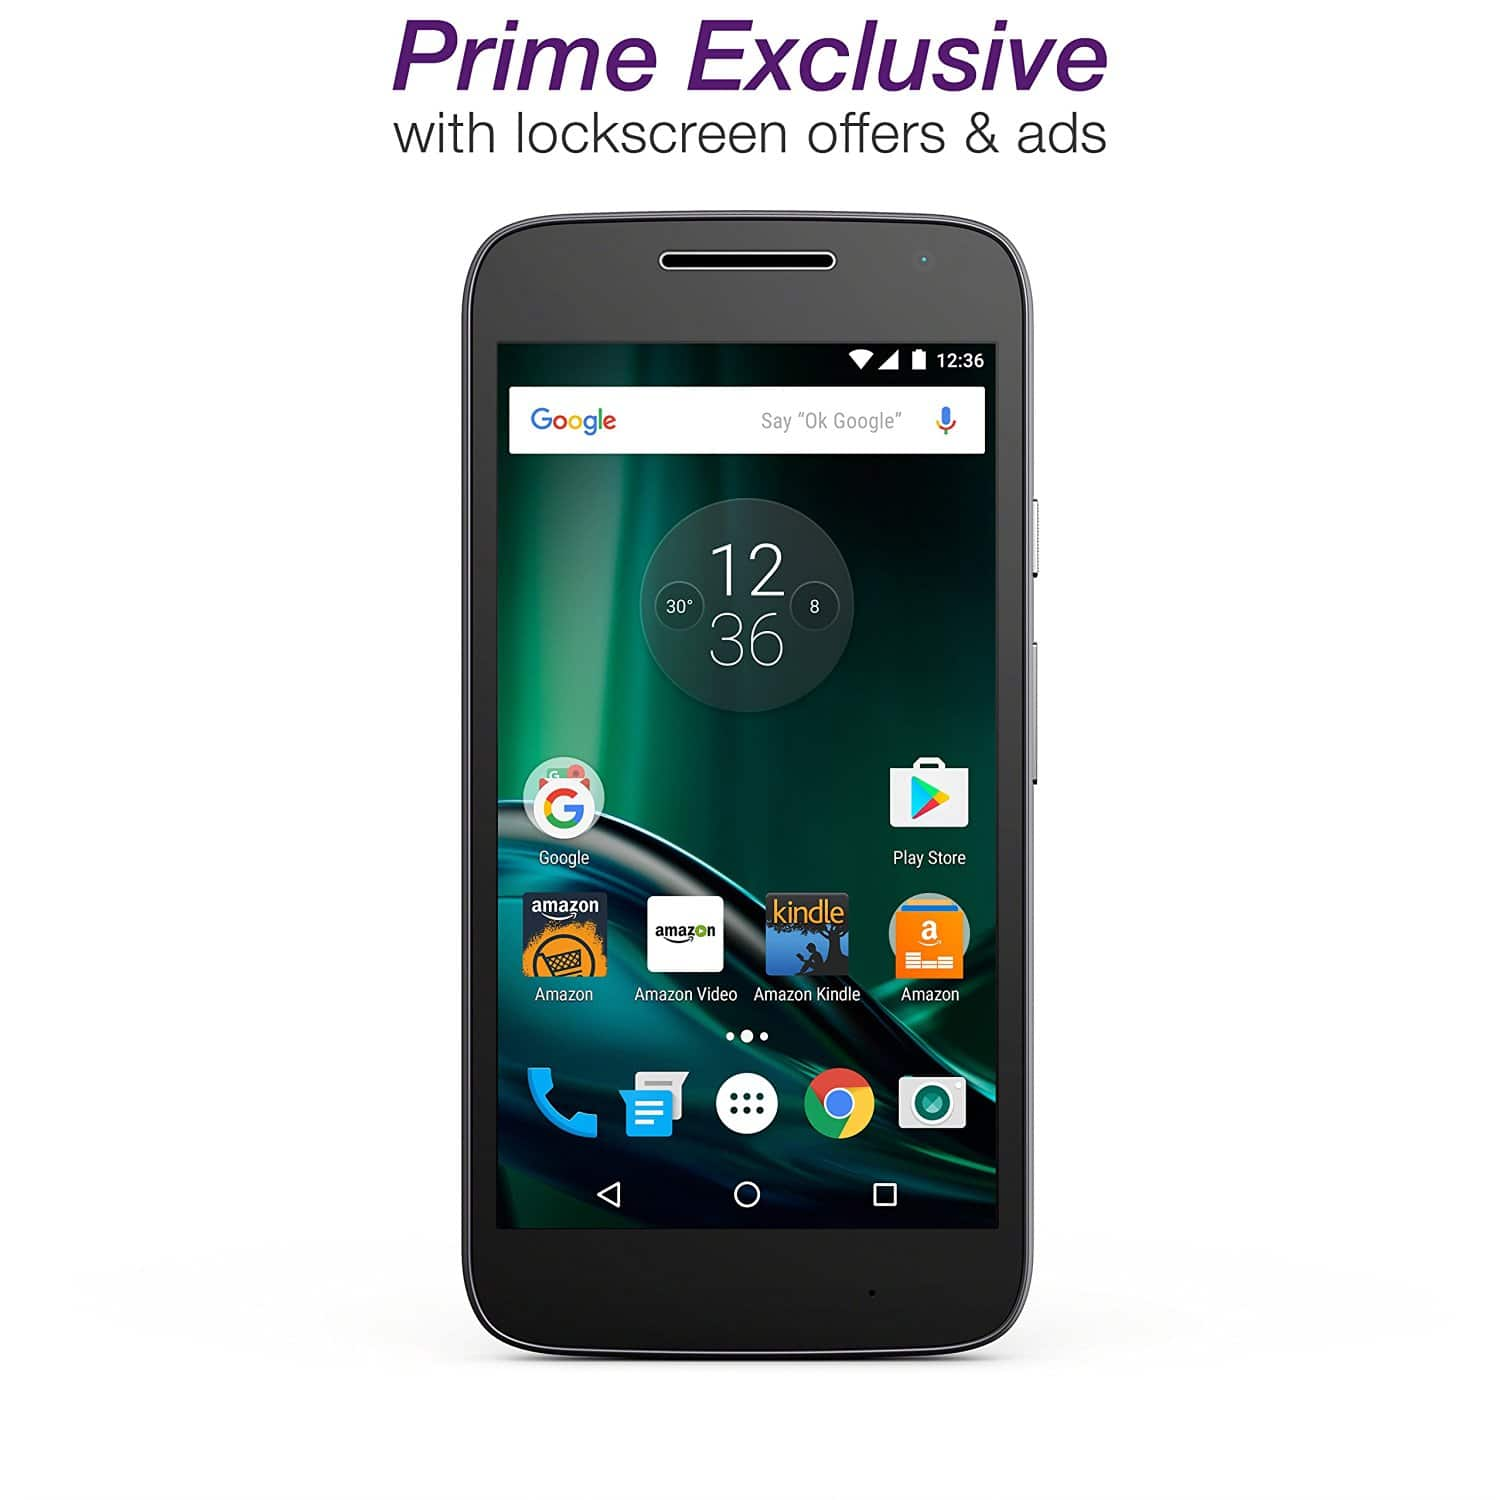 "Amazon ""Prime Exclusive"" Moto G Play $79.99 after instant promo discount -- ships 9/15"